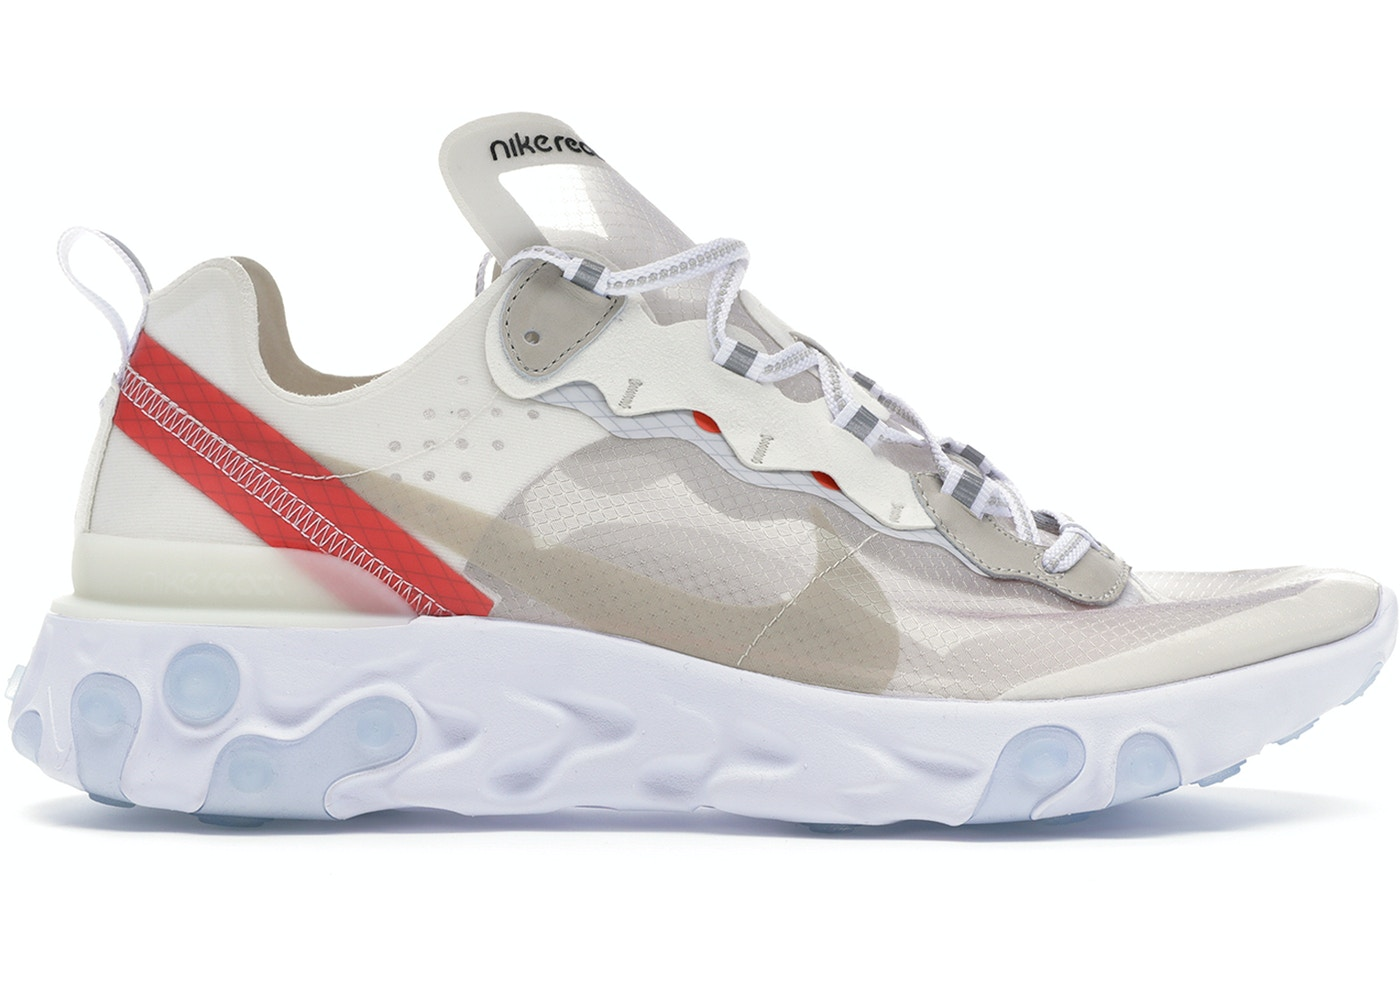 de40aa042b51 Nike React Element 87 Sail Light Bone - AQ1090-100